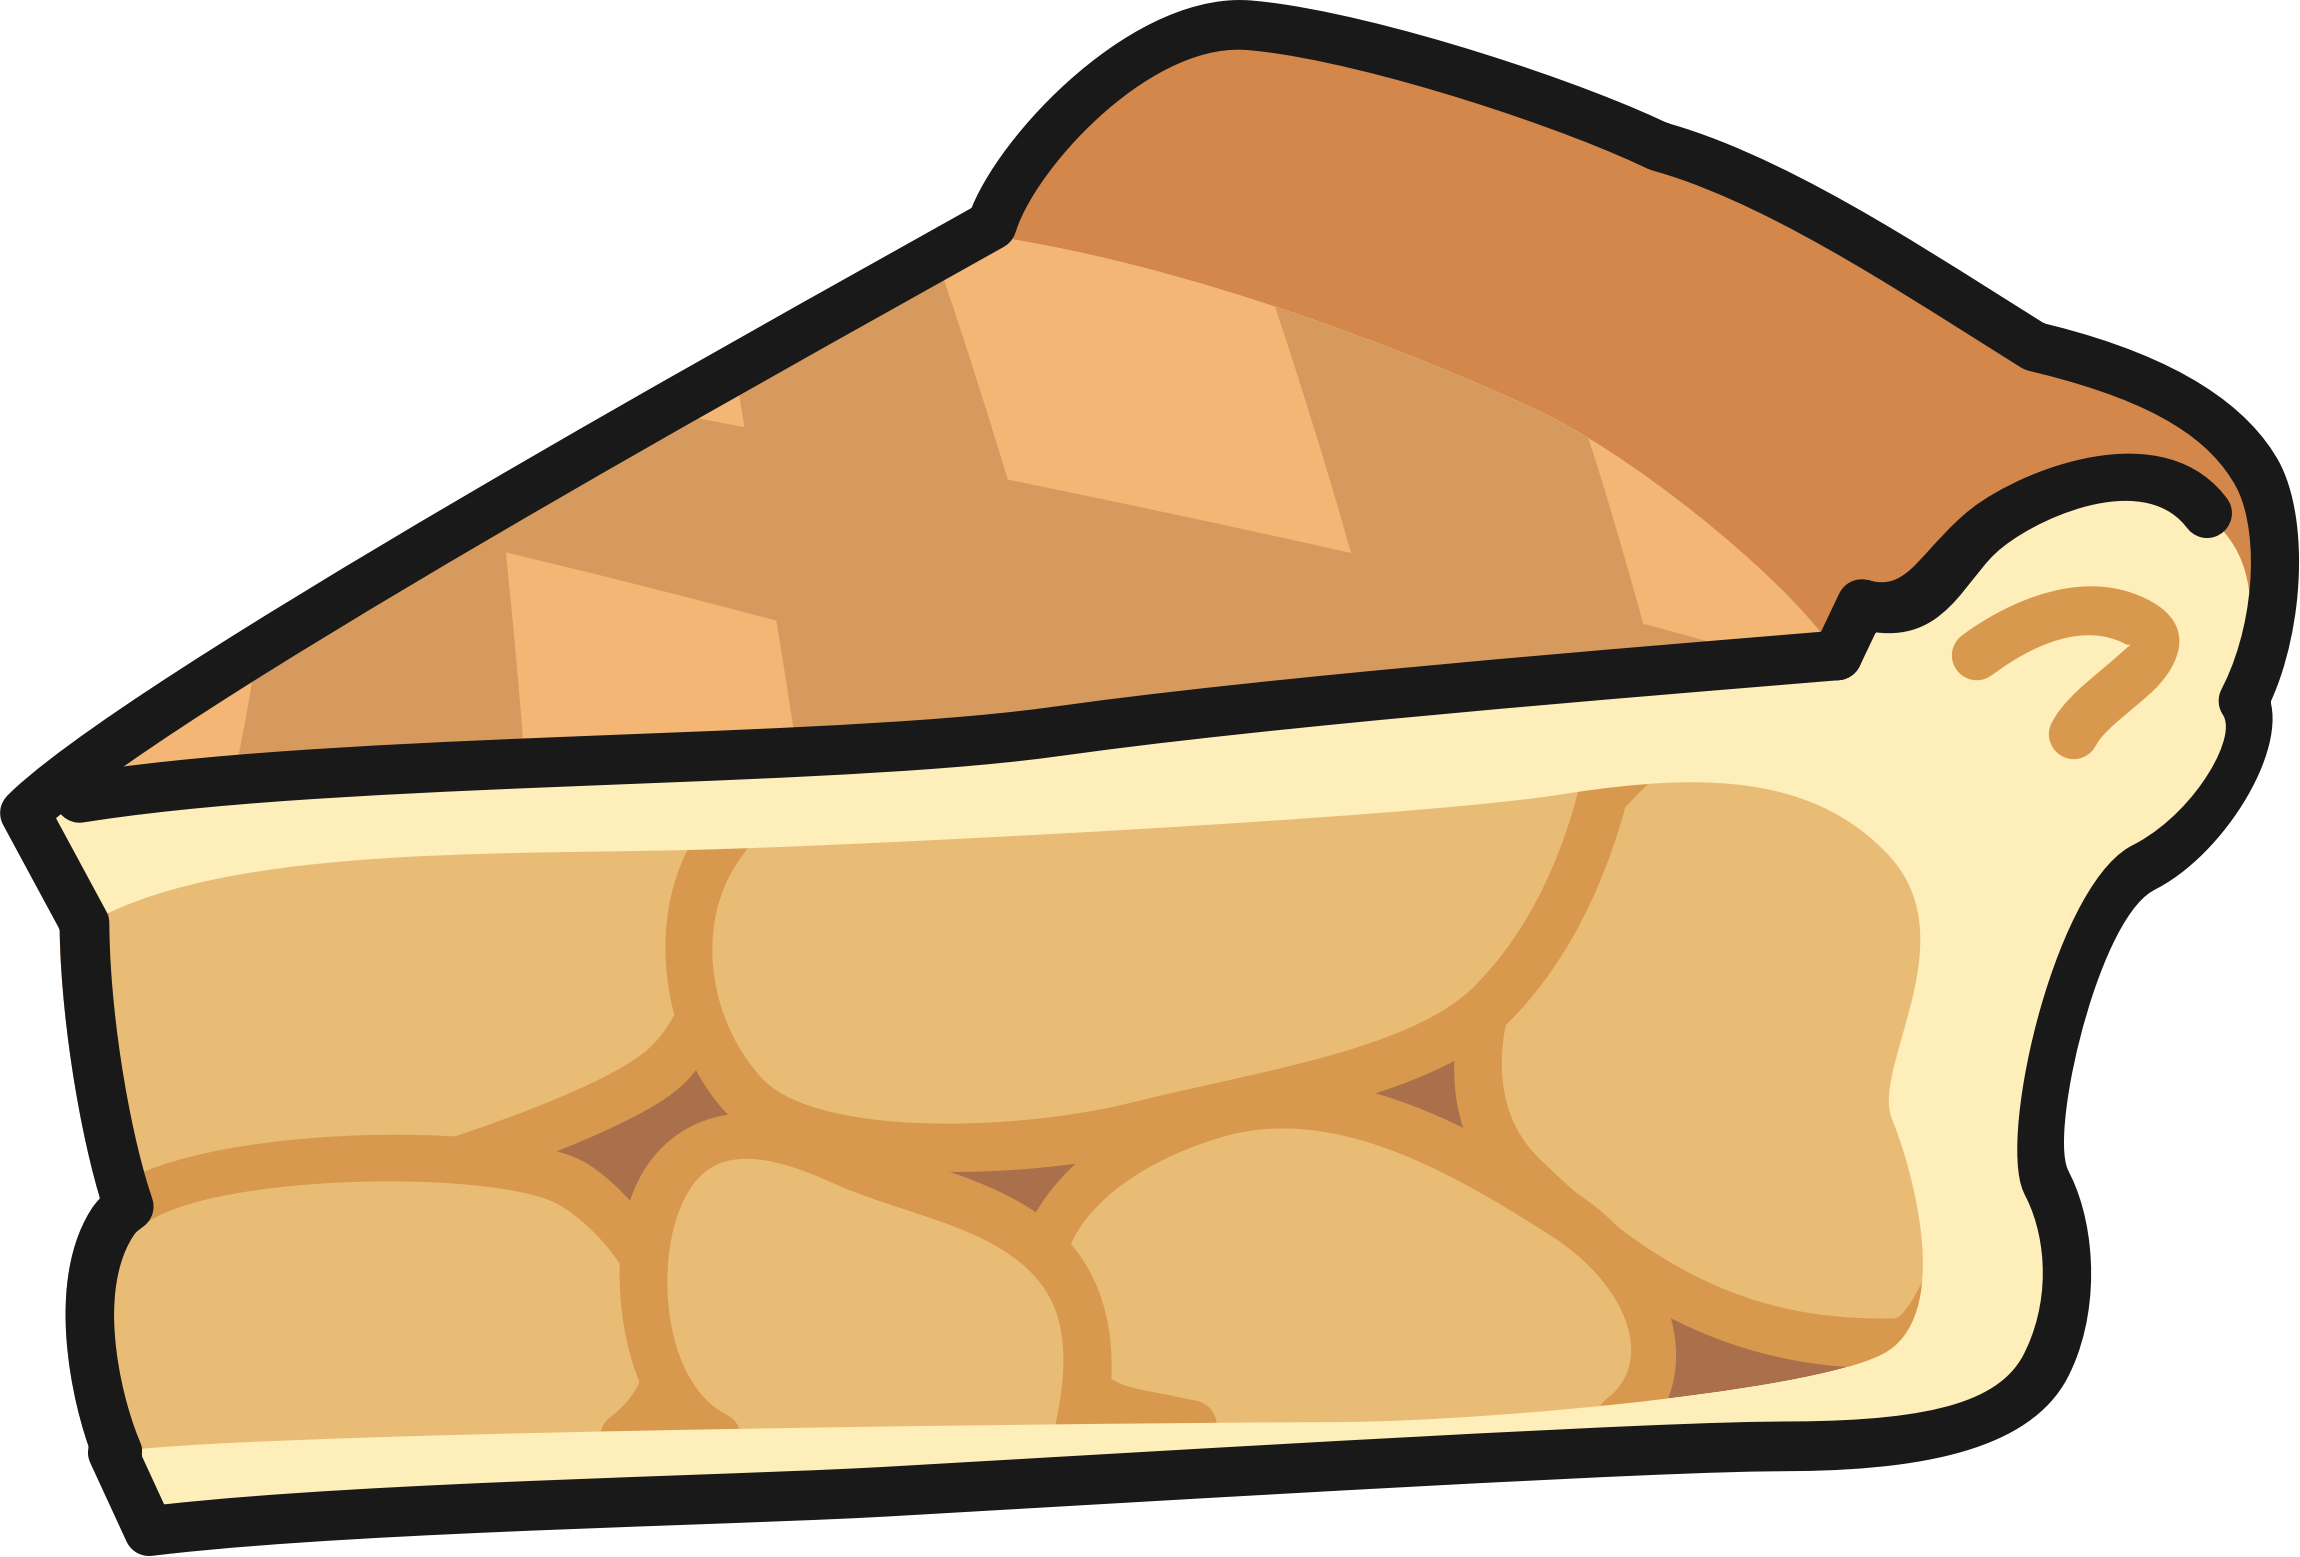 Cartoon pie png. Slice of apple icons